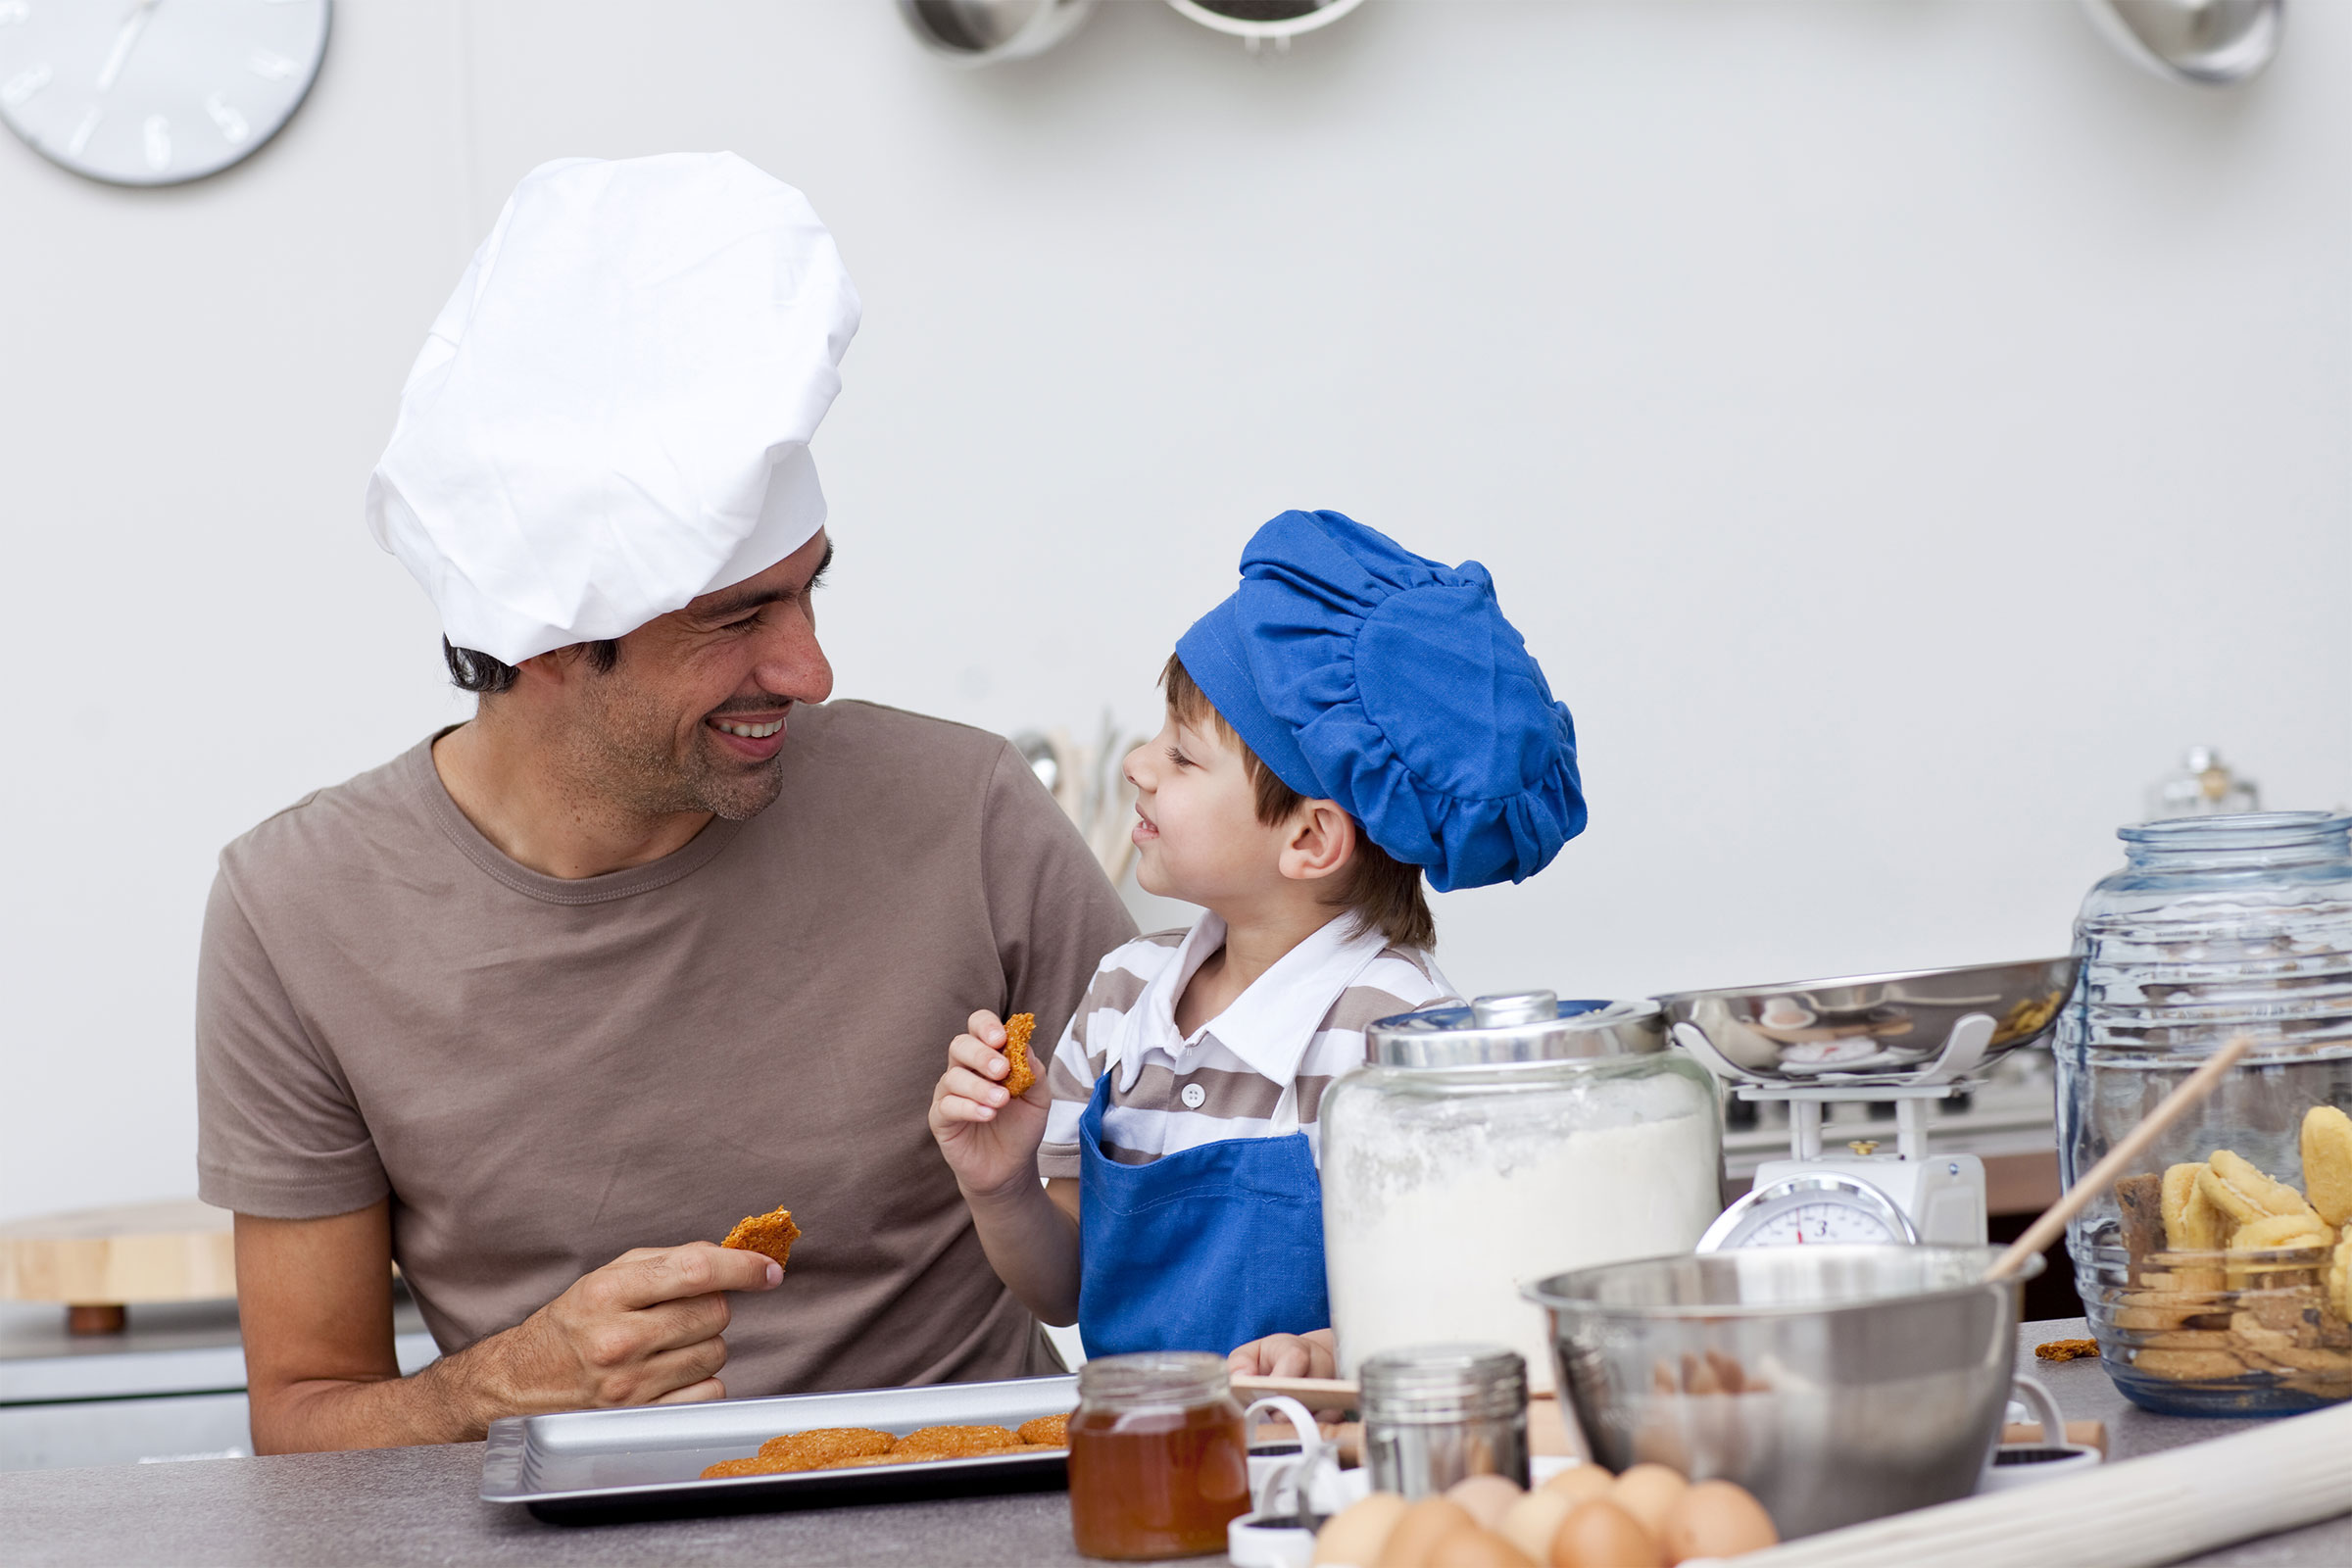 Parent and child cooking together